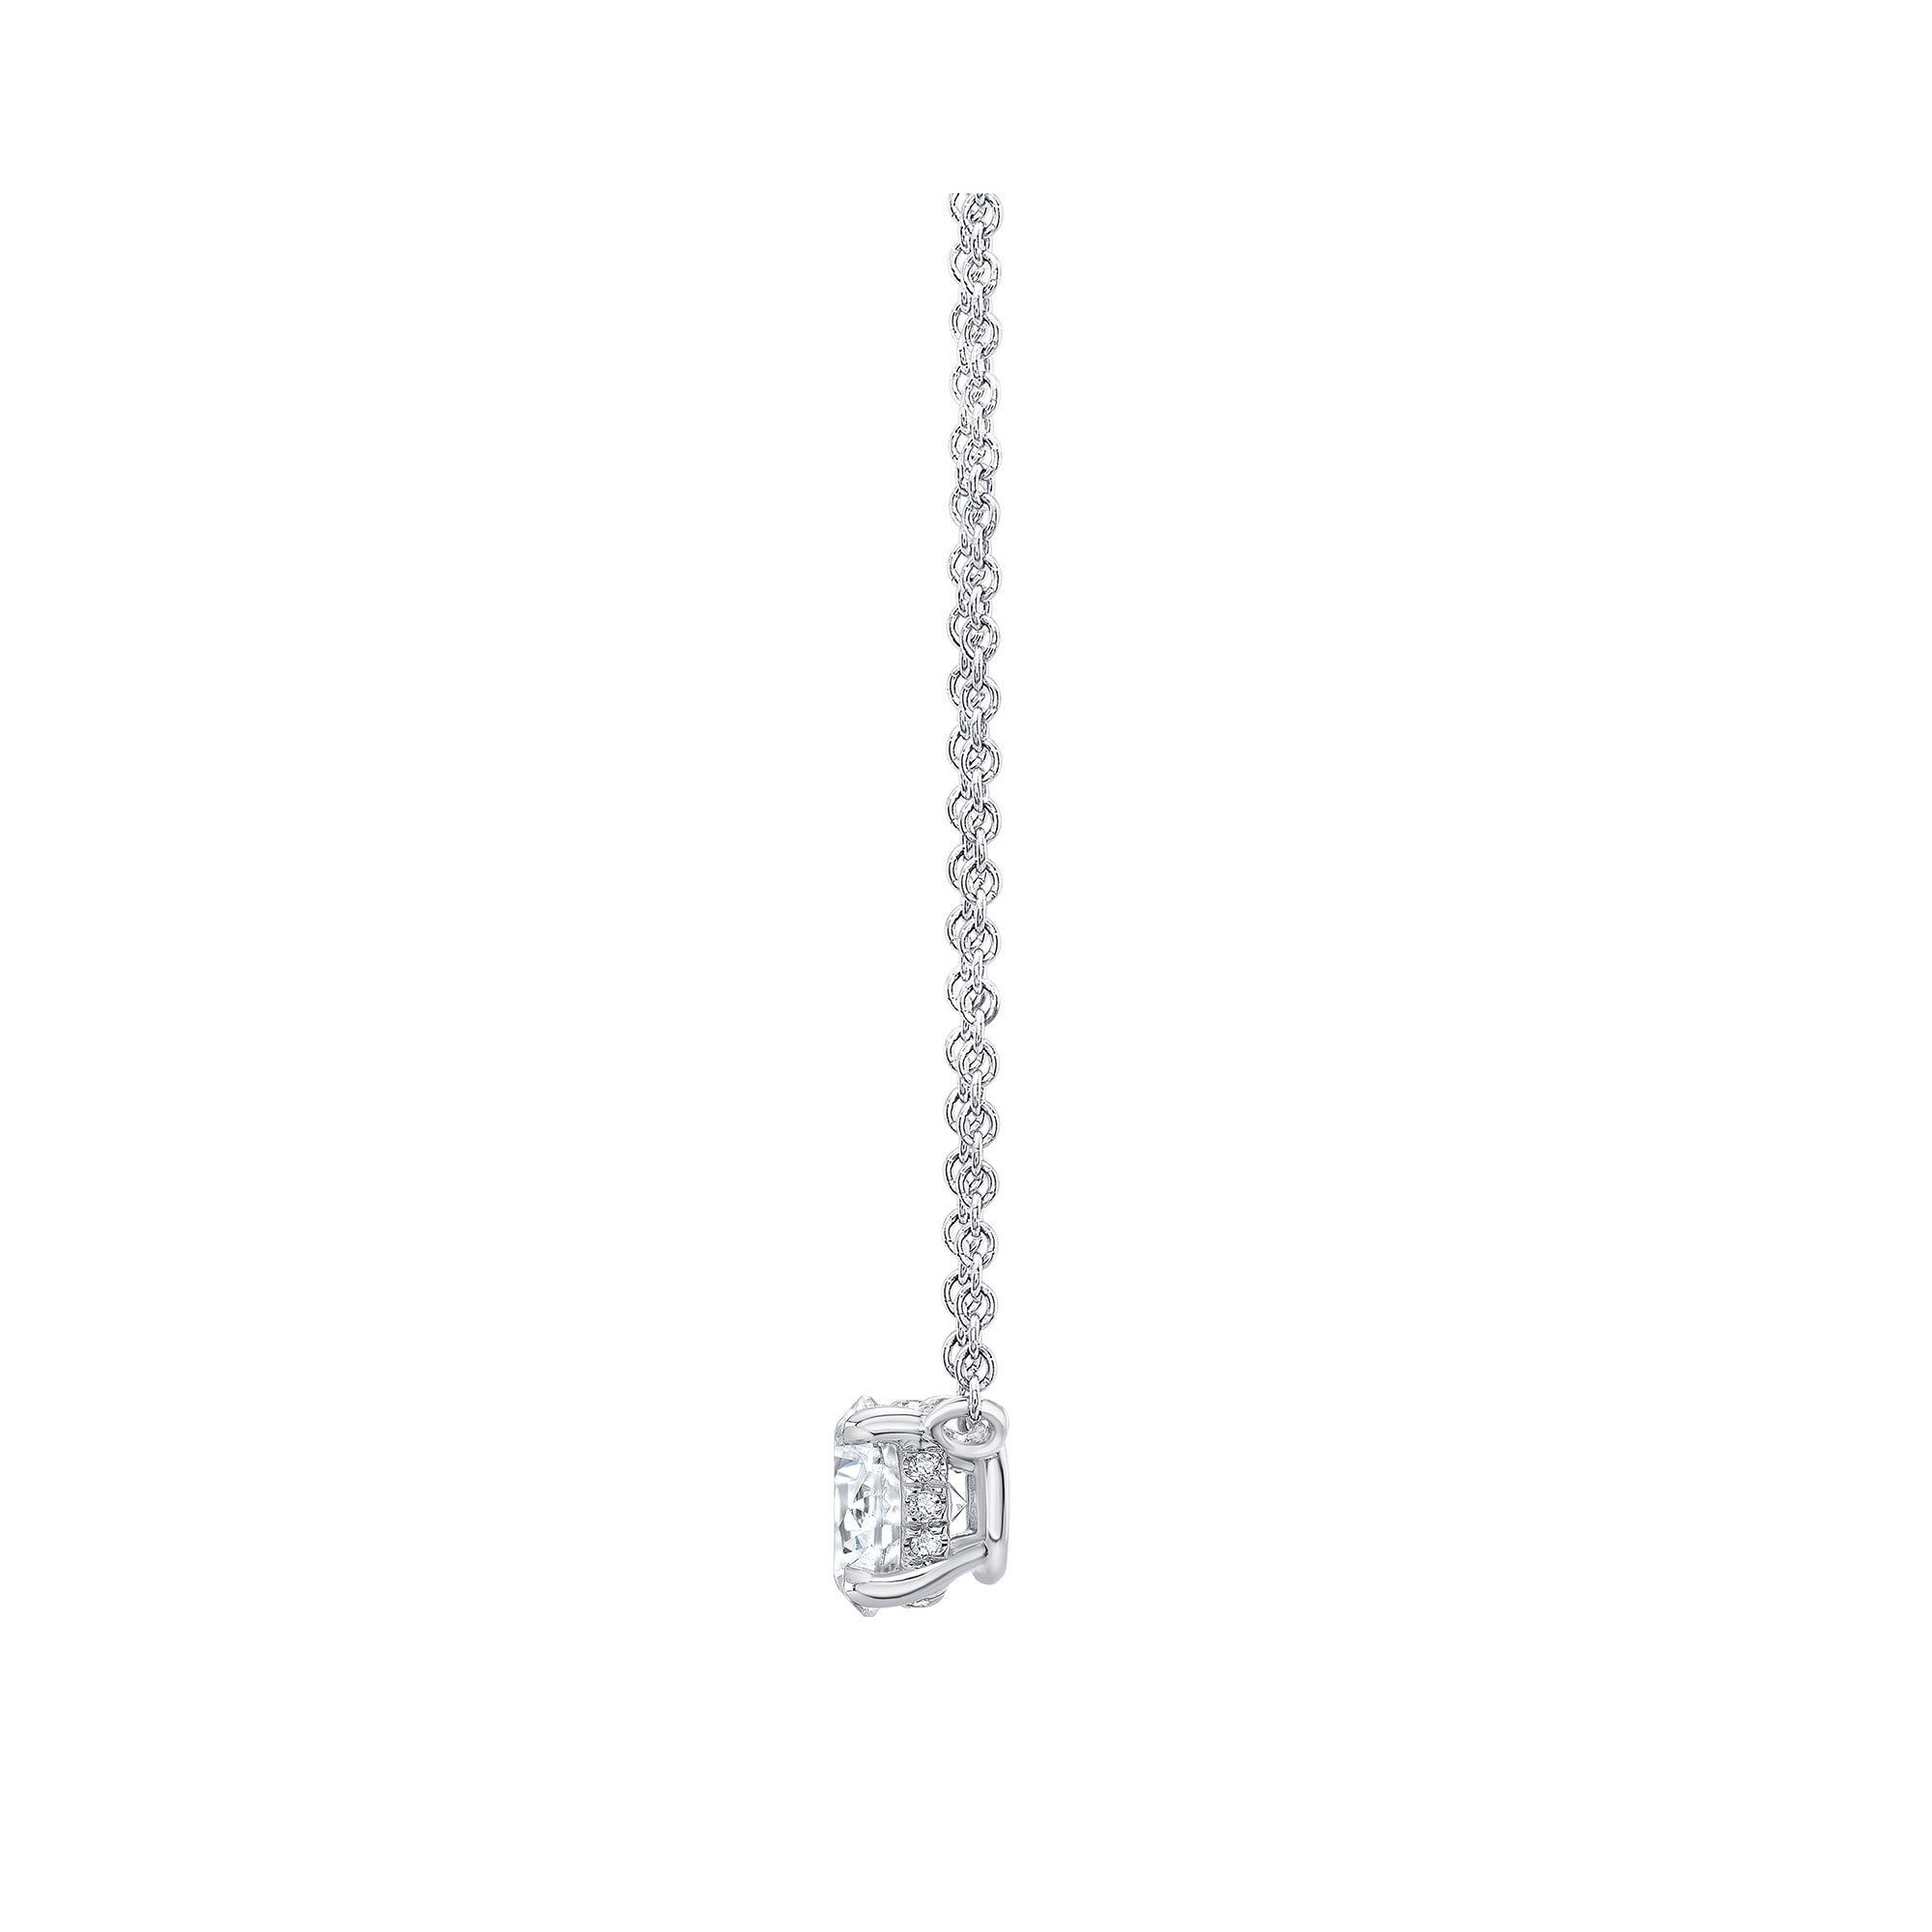 Marie Round Brilliant 1 Carat Lab Grown Diamond Necklace Side View in White Gold